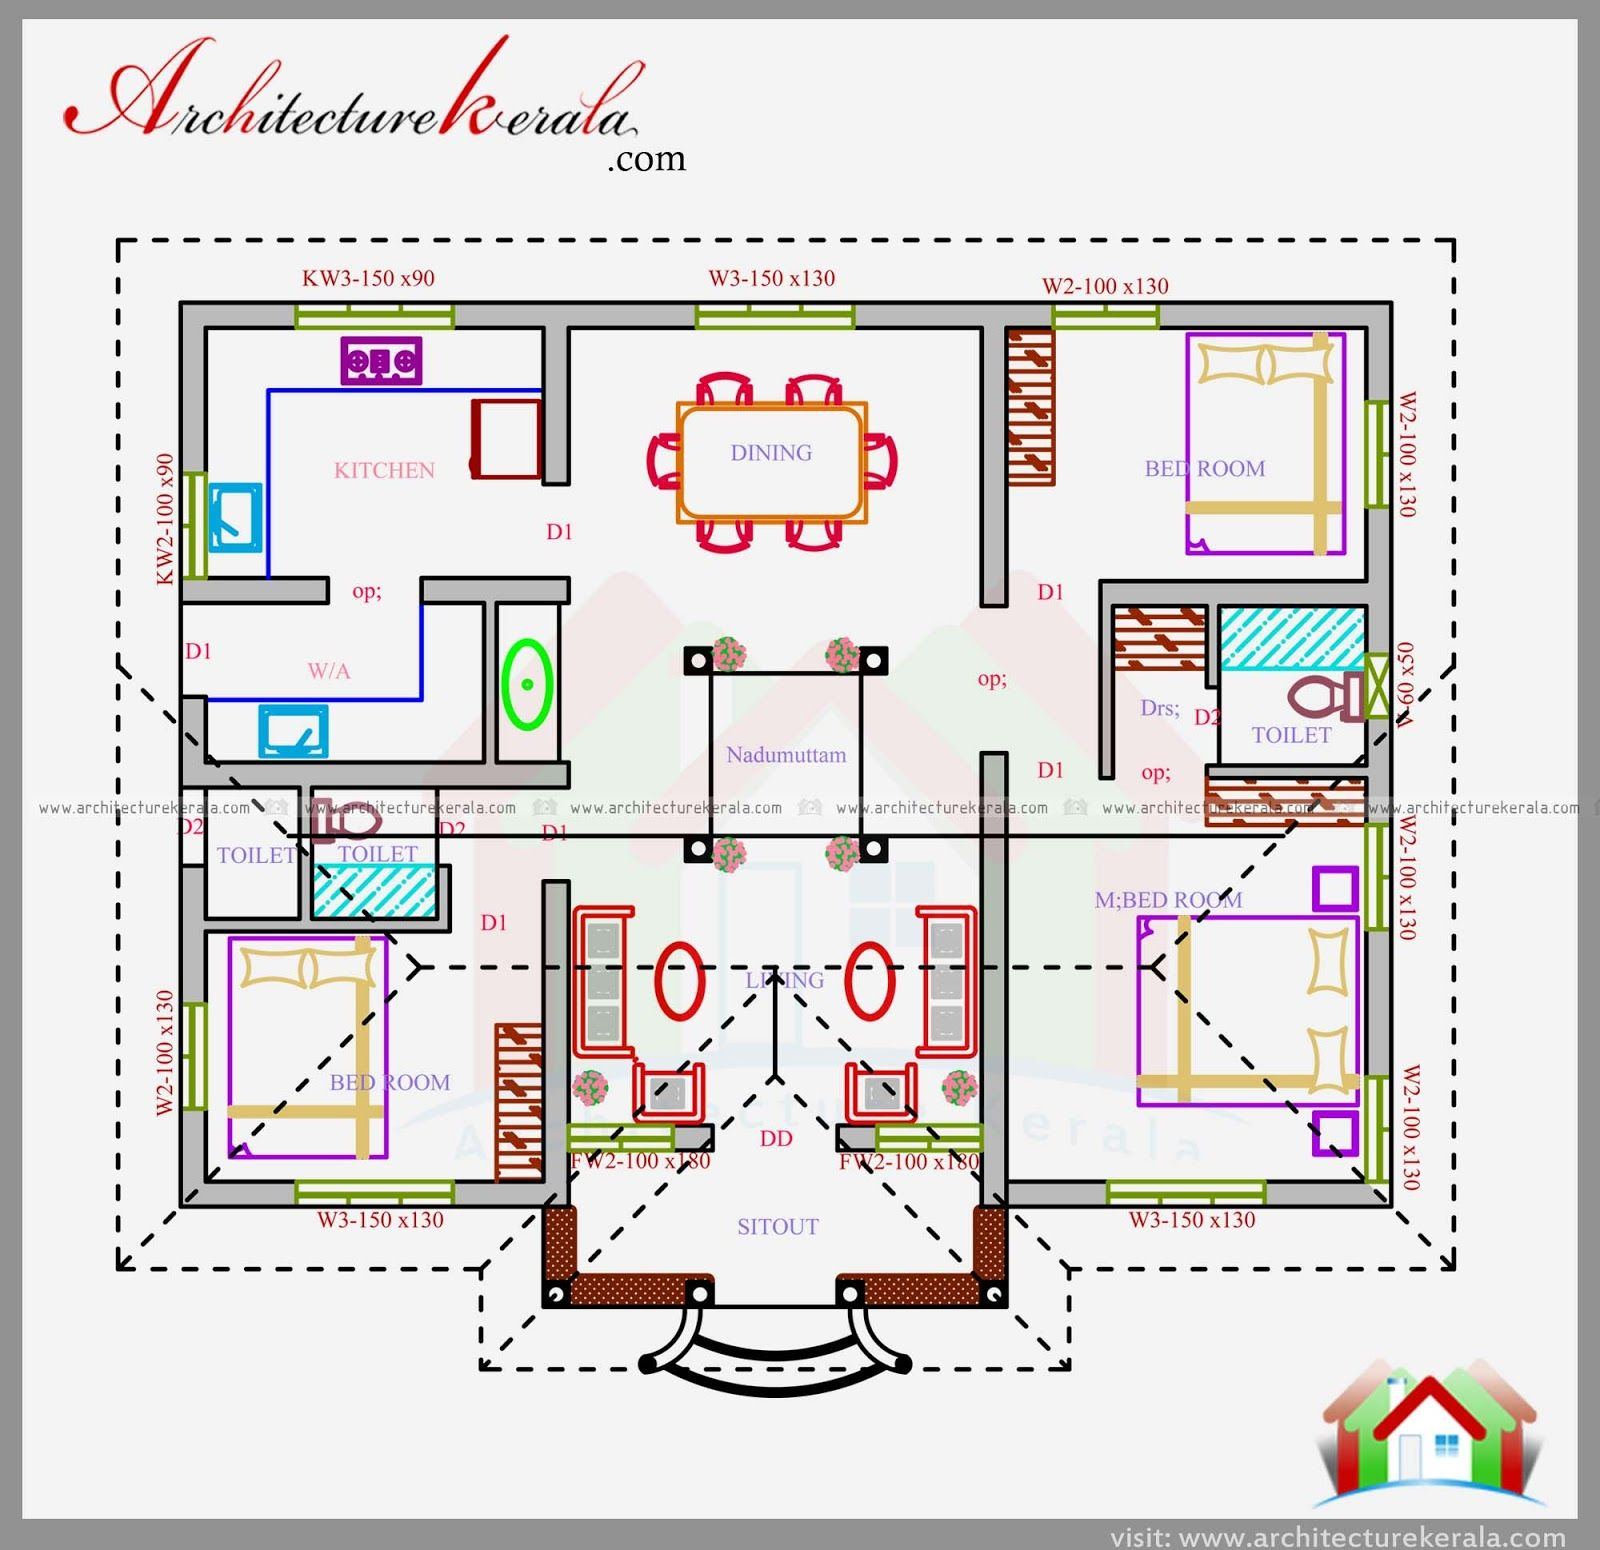 Three bedrooms in 1200 square feet kerala house plan House plans indian style in 1200 sq ft